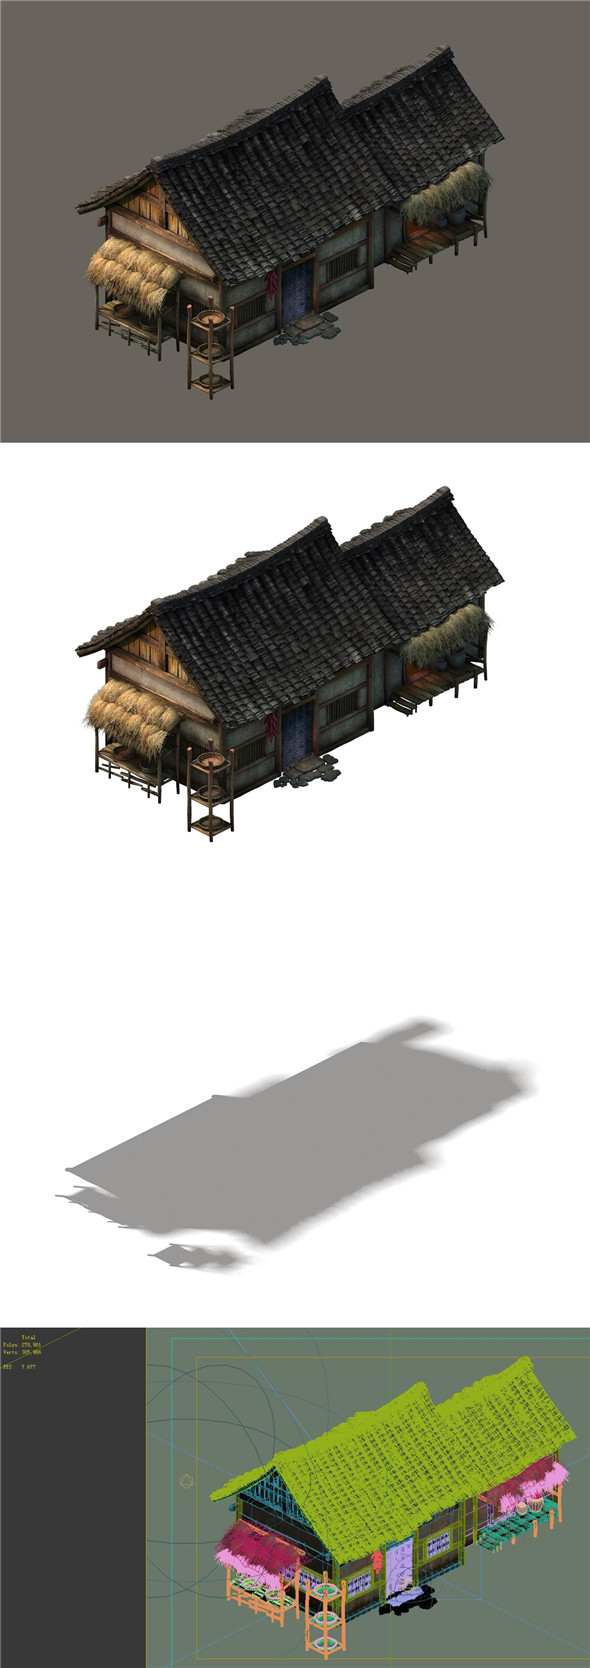 Game model - small village wooden house 01 - 3DOcean Item for Sale